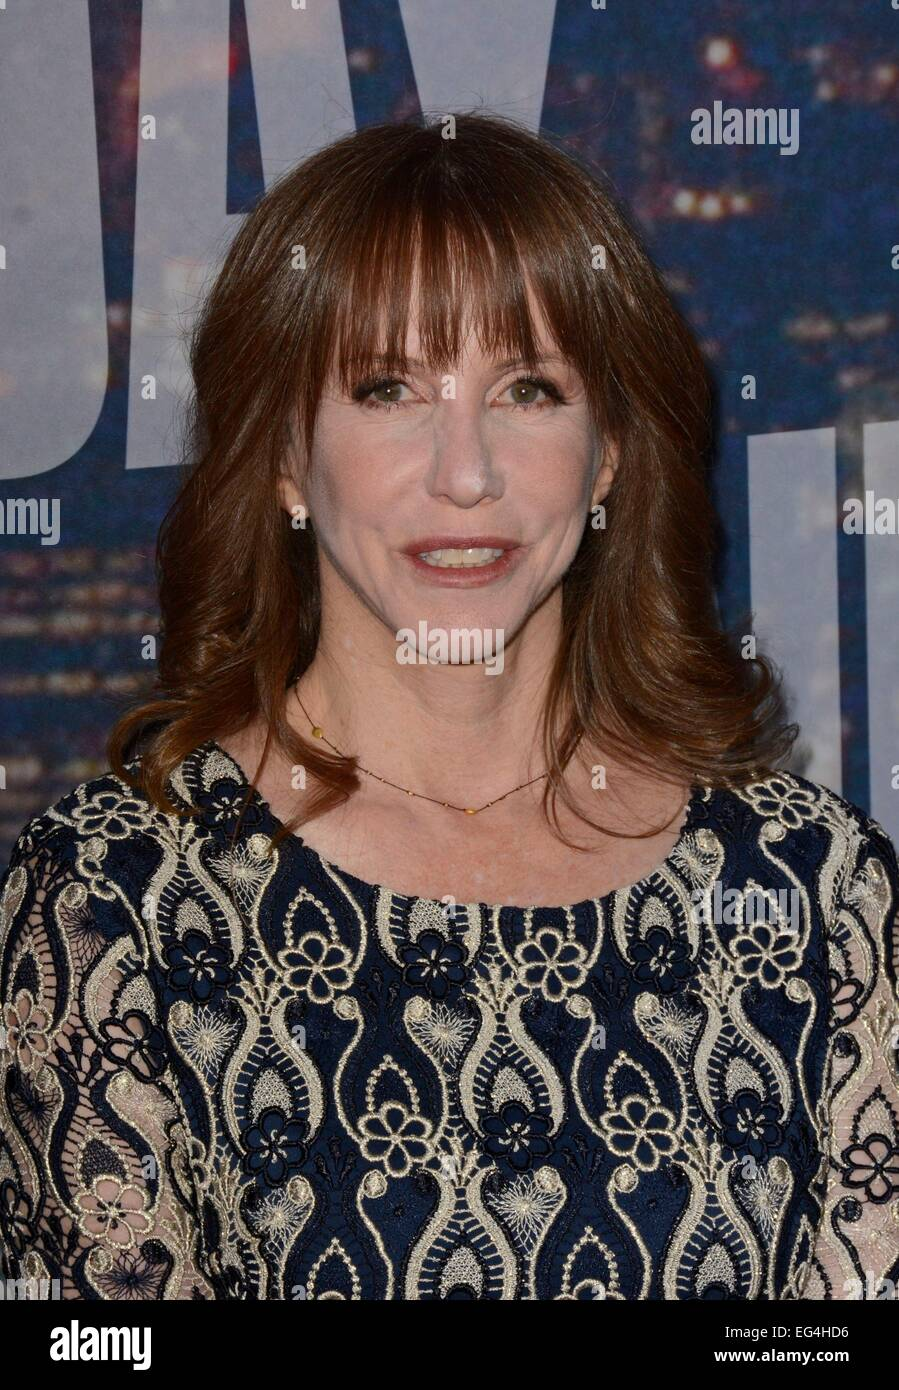 Laraine Newman nudes (51 photos), Tits, Fappening, Boobs, cameltoe 2017